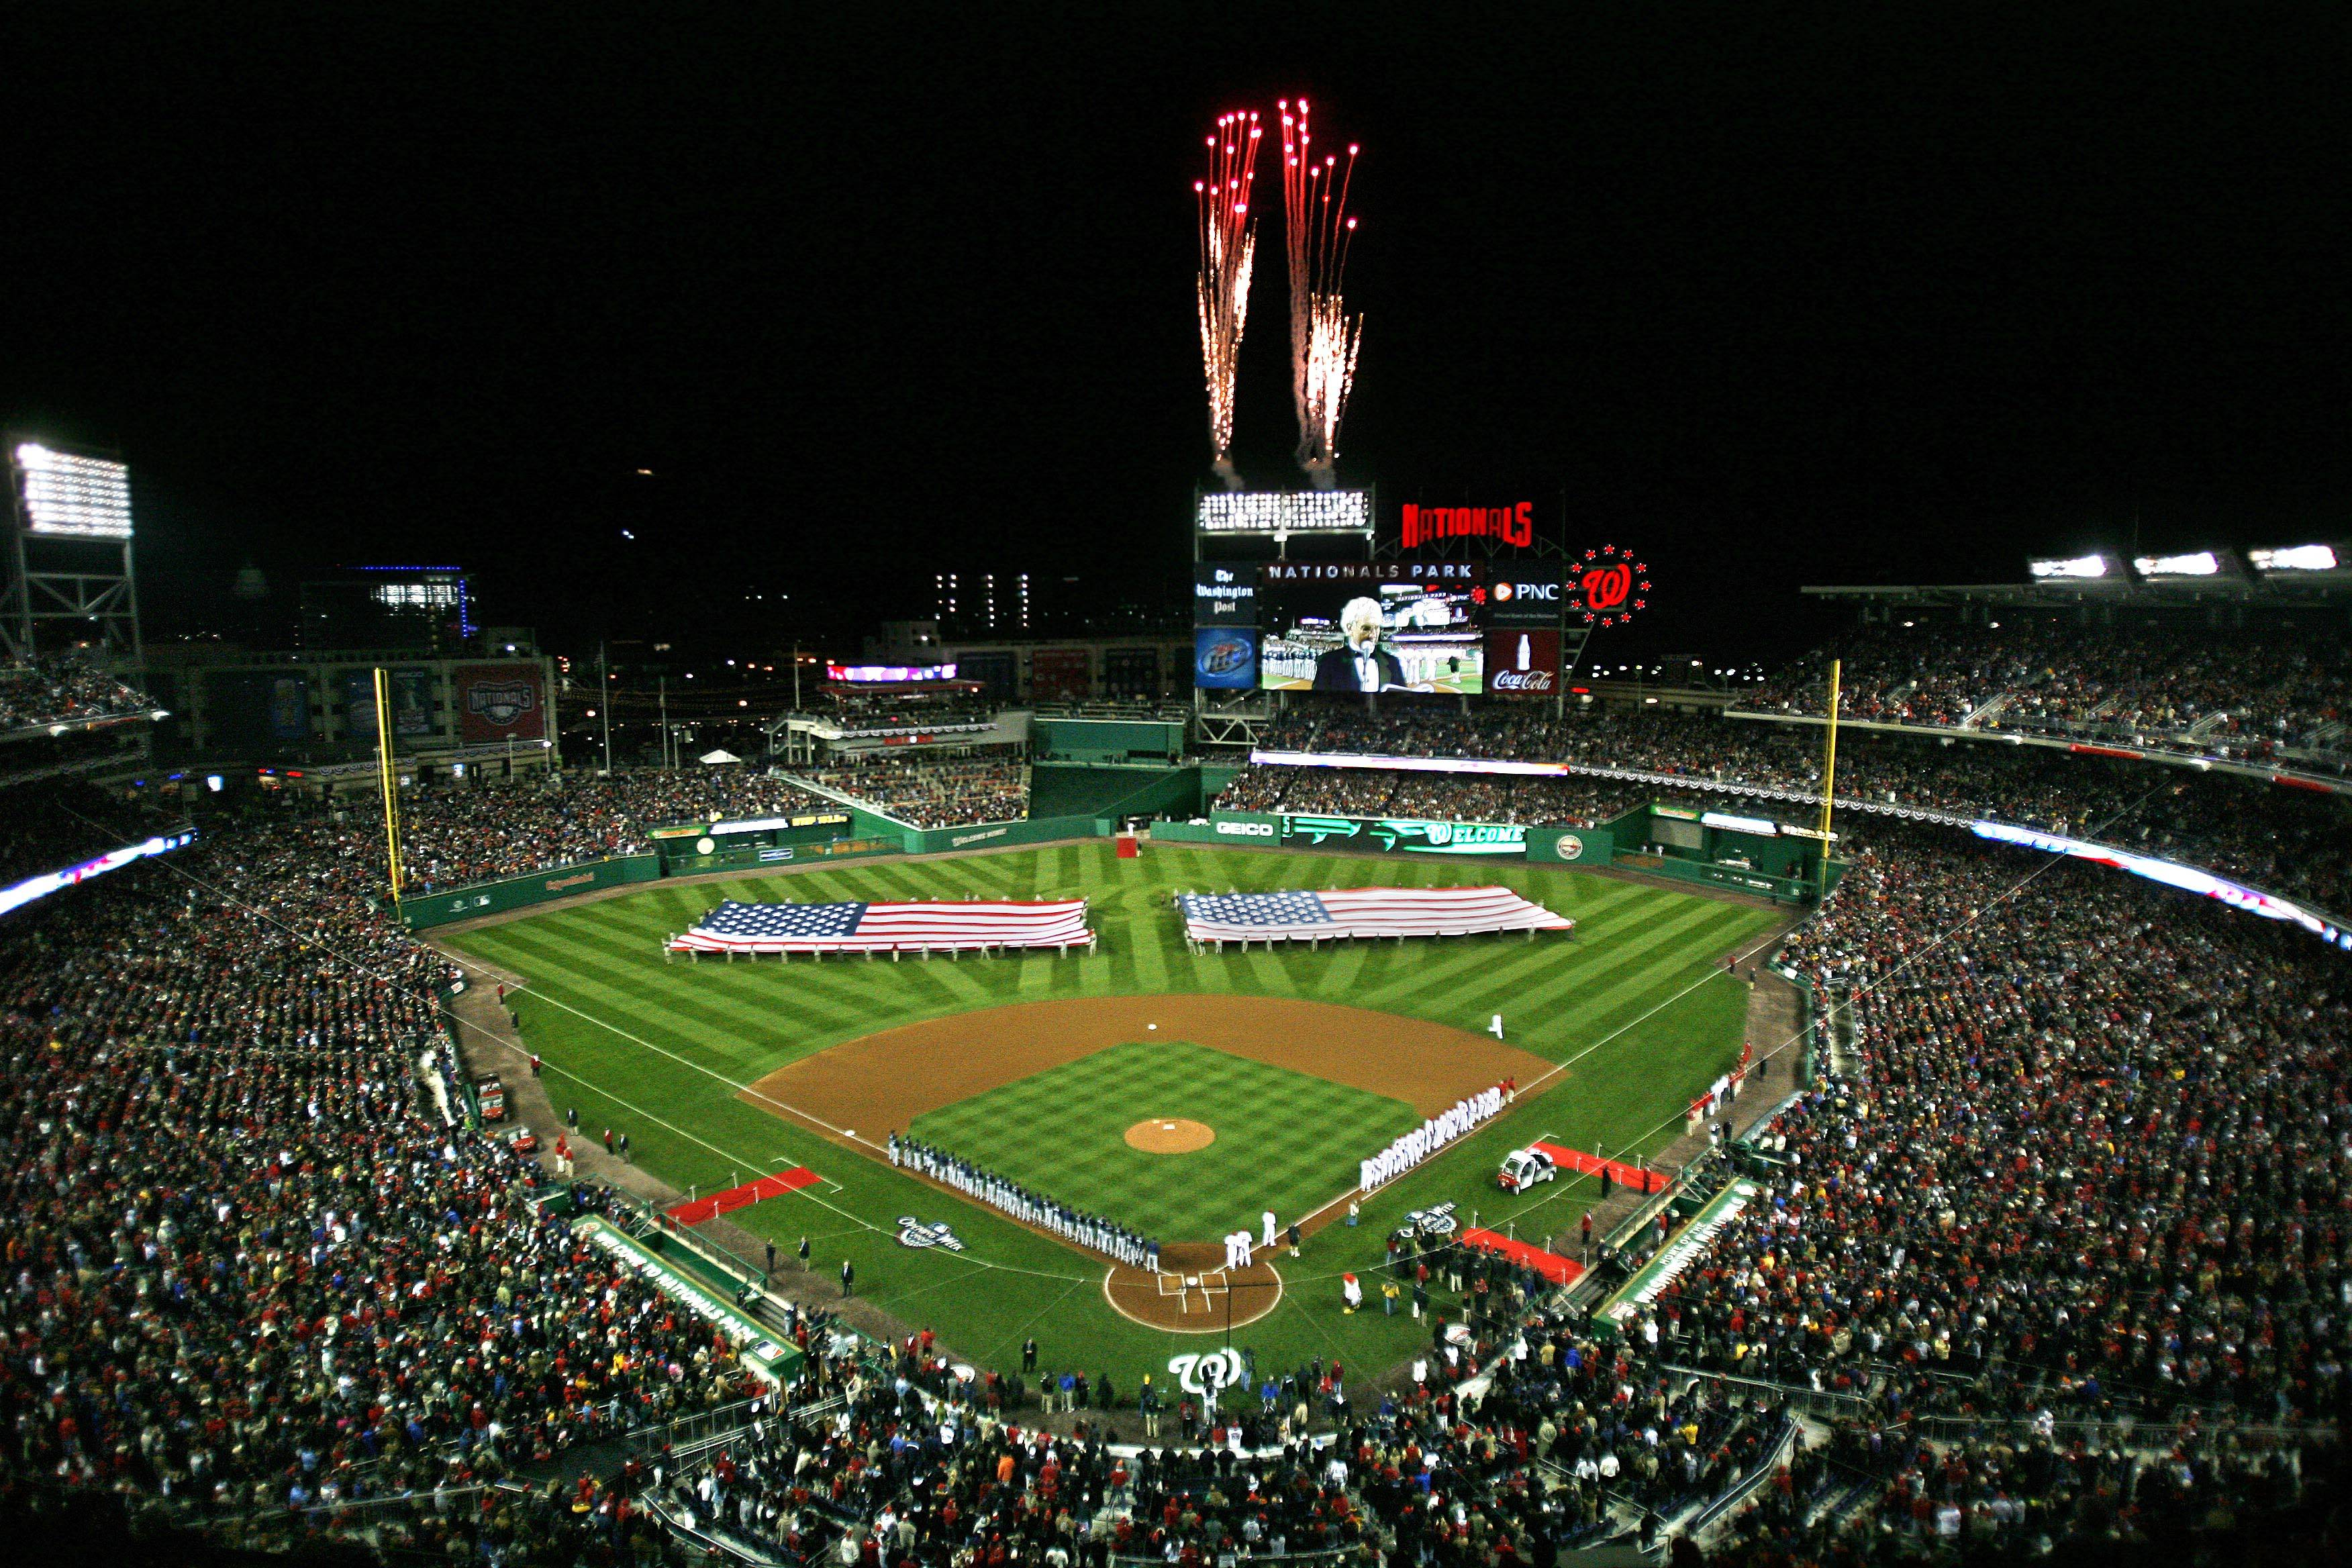 Tickets are still available for Games 1 and 2 at Nationals Park, Cubs fans.